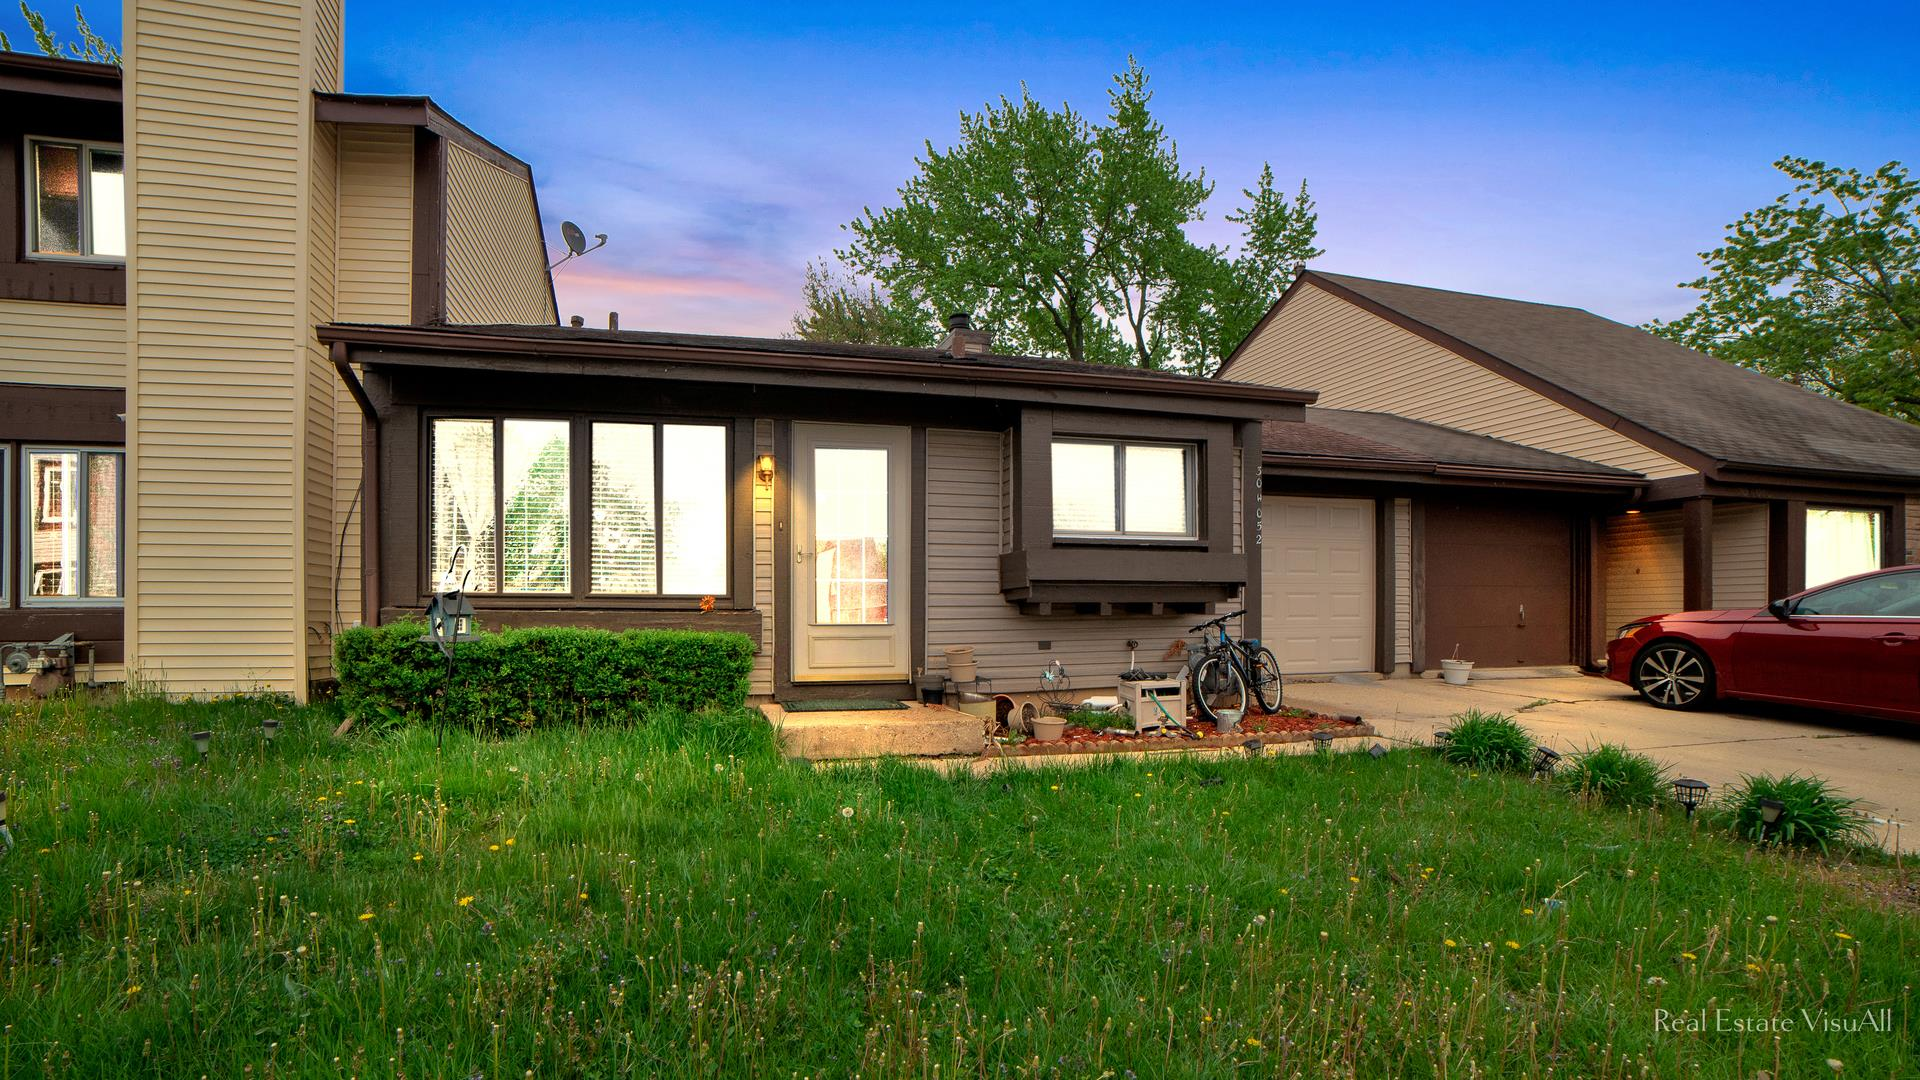 30W052 Mulberry Court #052, Warrenville, IL 60555 - #: 11076121